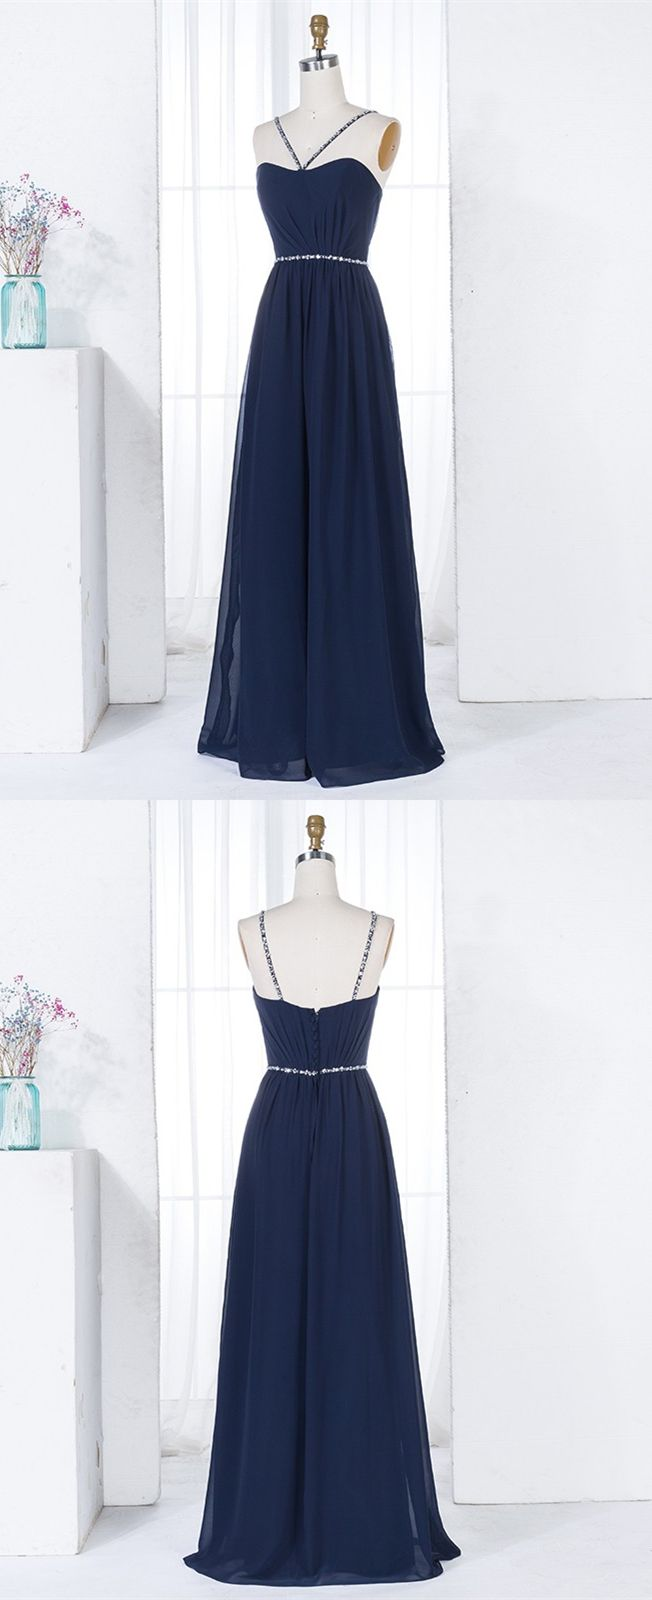 A line v neck navy blue chiffon long bridesmaid dress with beading a line v neck navy blue chiffon long bridesmaid dress with beading long bridesmaid dresses wedding party dresses and navy blue ombrellifo Image collections